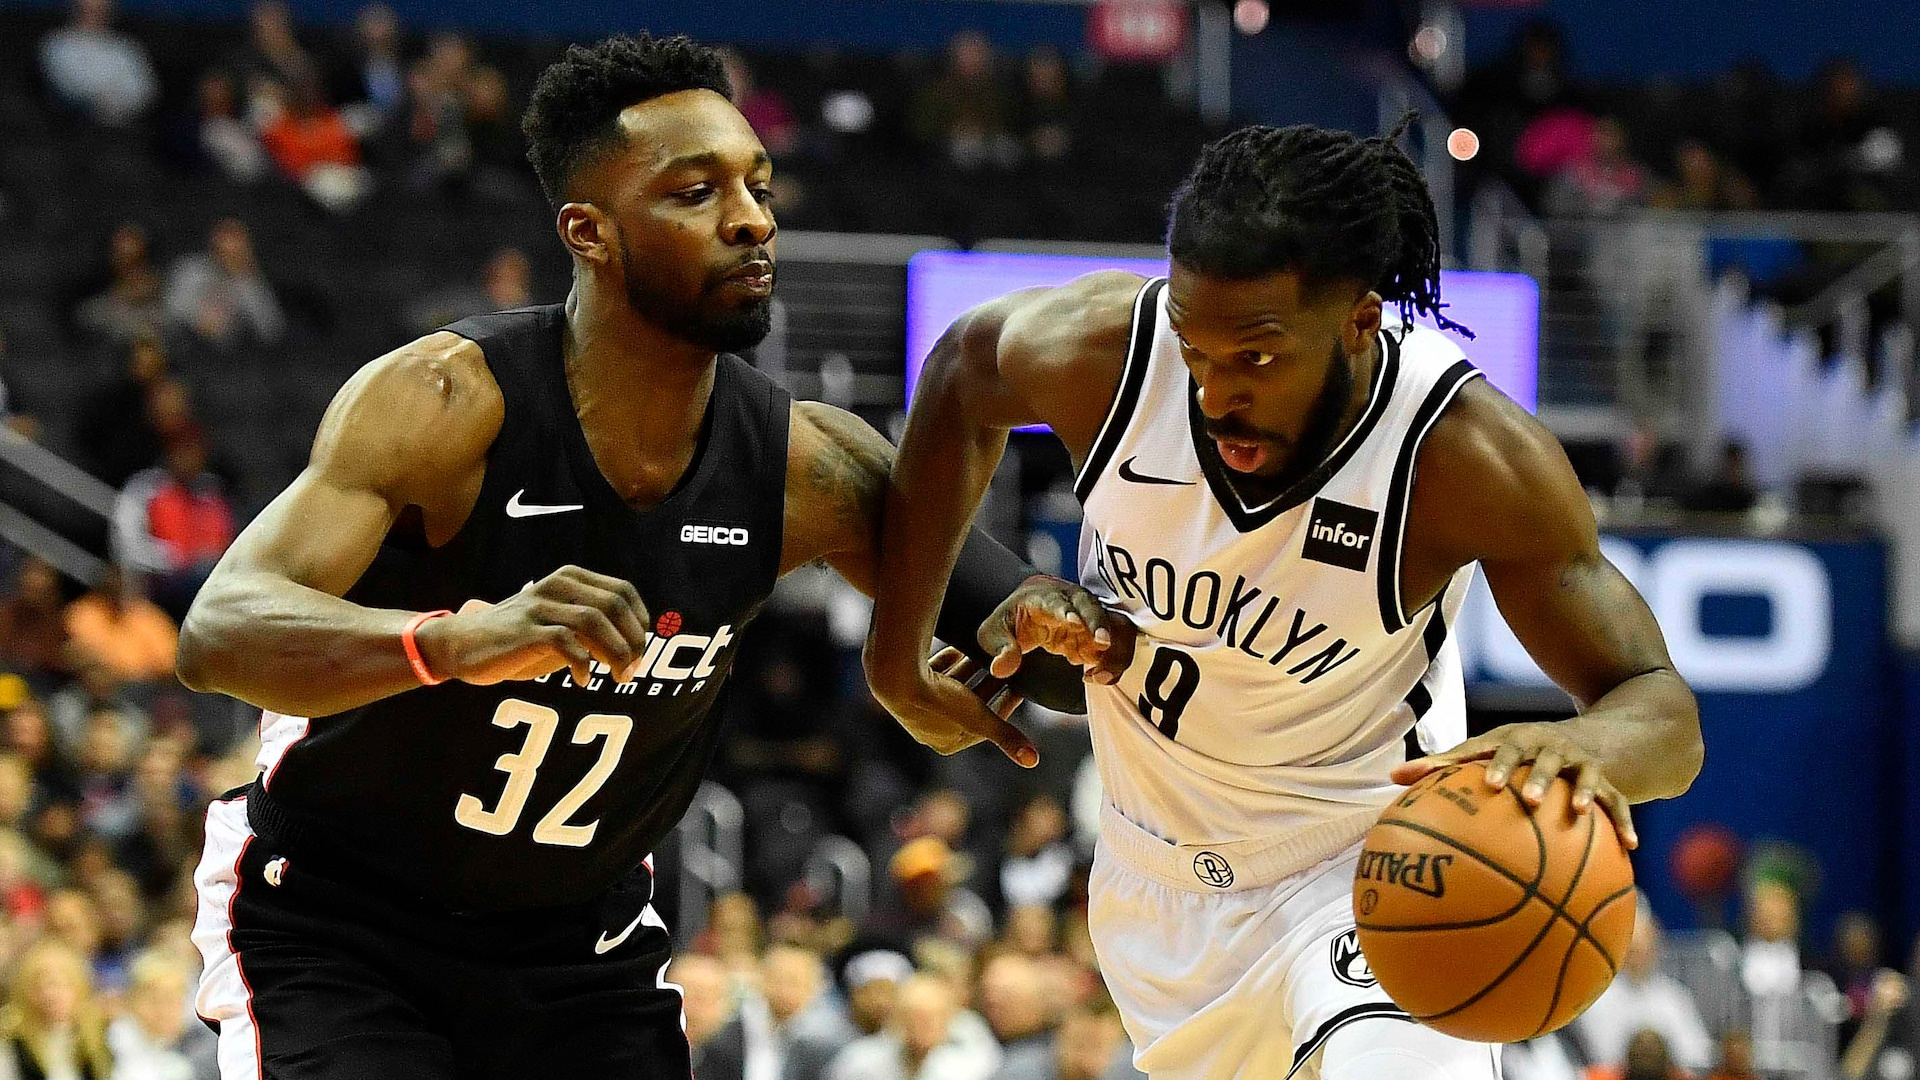 Reports: Jeff Green, DeMarre Carroll to sign with Houston Rockets